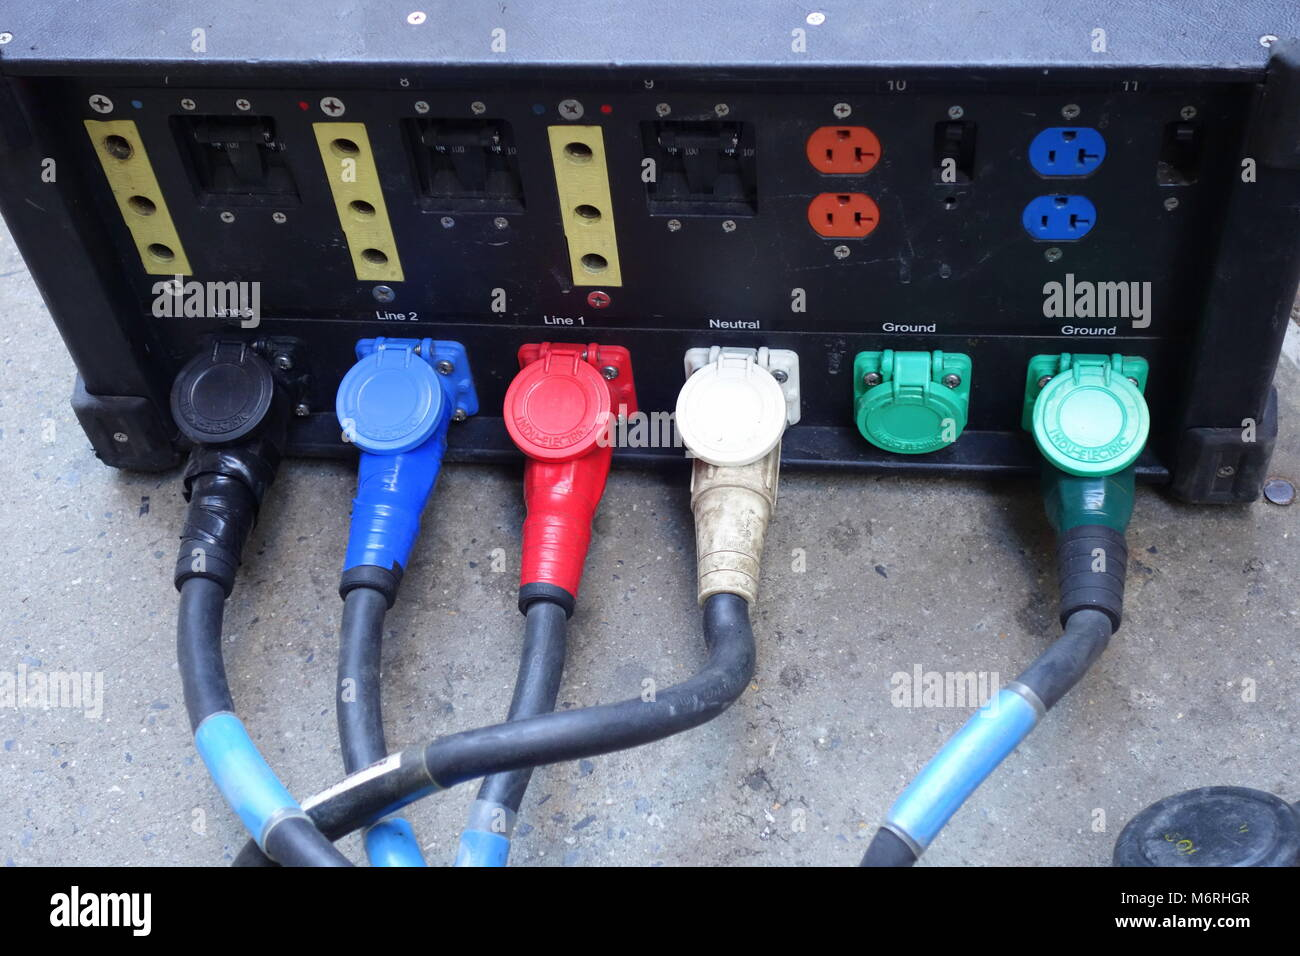 Electrical Box Stock Photos Images Alamy House Wiring Junction Portable With Outlets And Wires Image